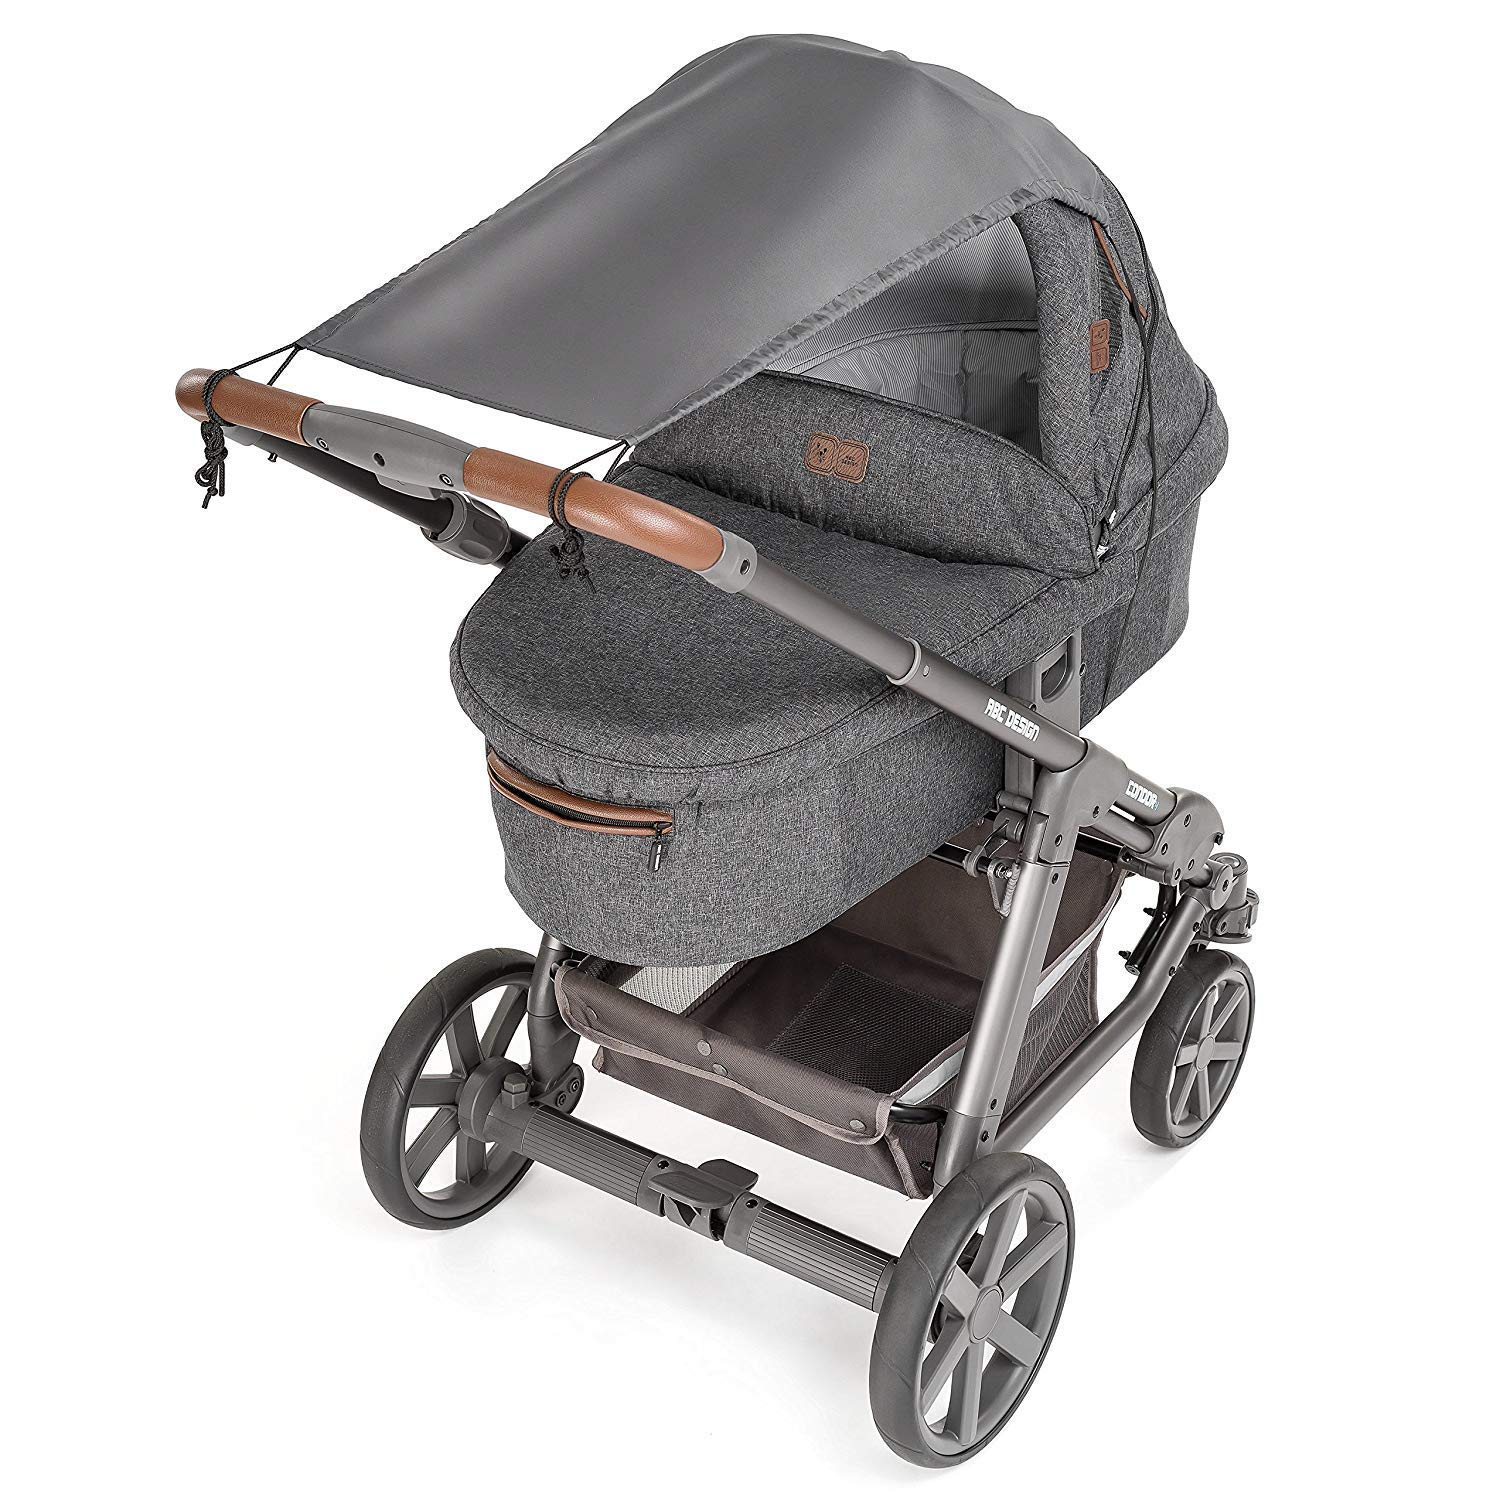 Stroller Sunshade Baby Stroller Cover-Effective UV Rays Cut Design-Stops 99% of The Sun's Rays (UPF50+) Universal fit